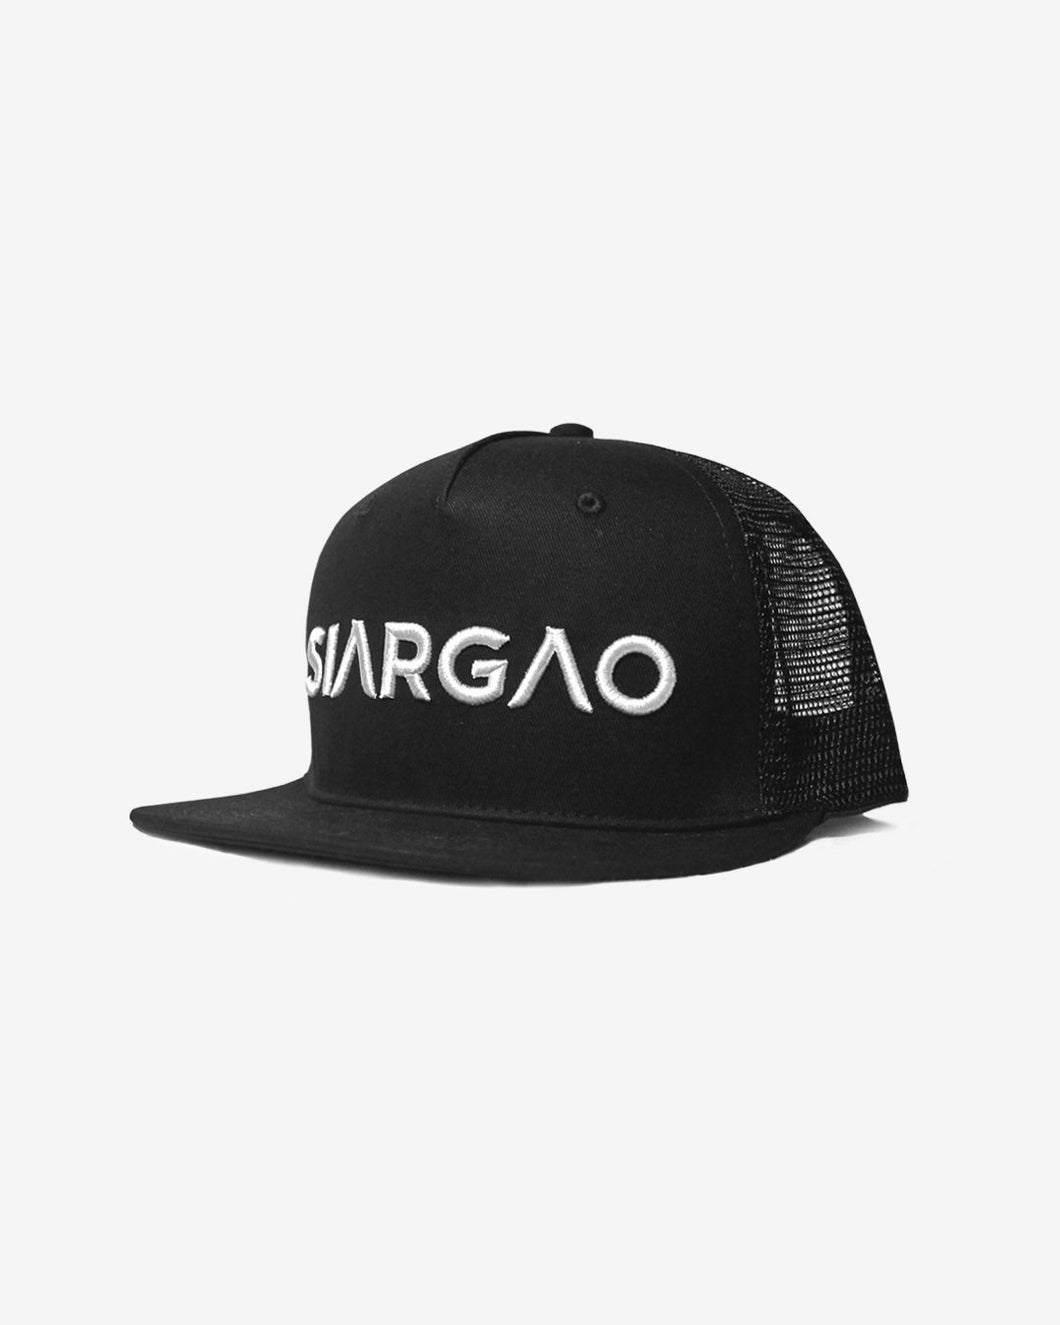 Gwapitos Siargao Trucker Cap Black/White - KS Boardriders | Philippines Online Branded Clothes & Surf Shop